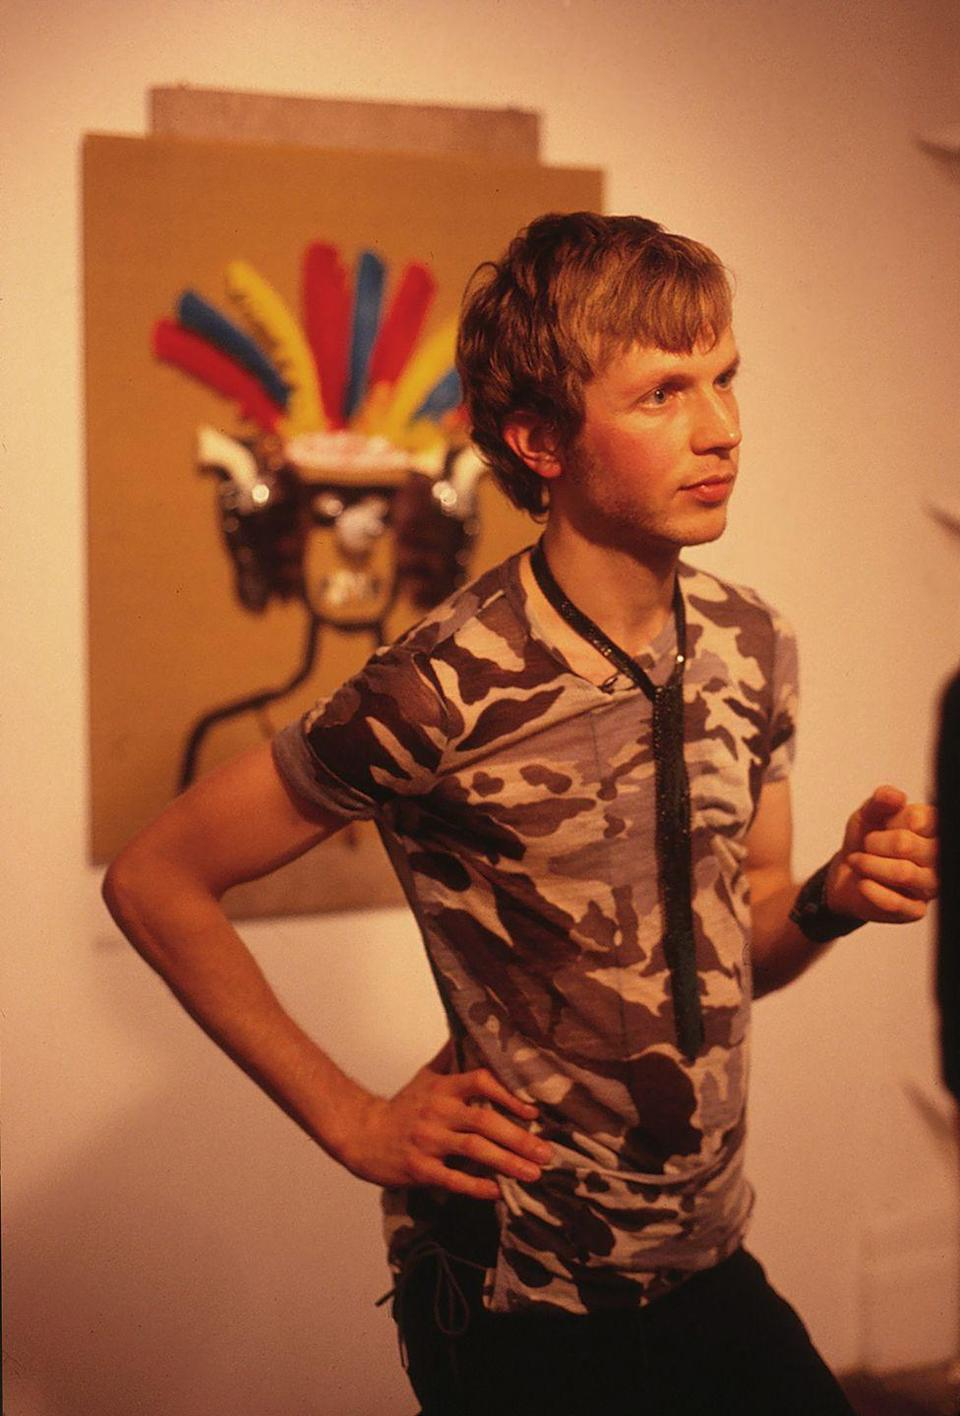 <p>Beck at the opening of an art show in New York City in 1998. </p>